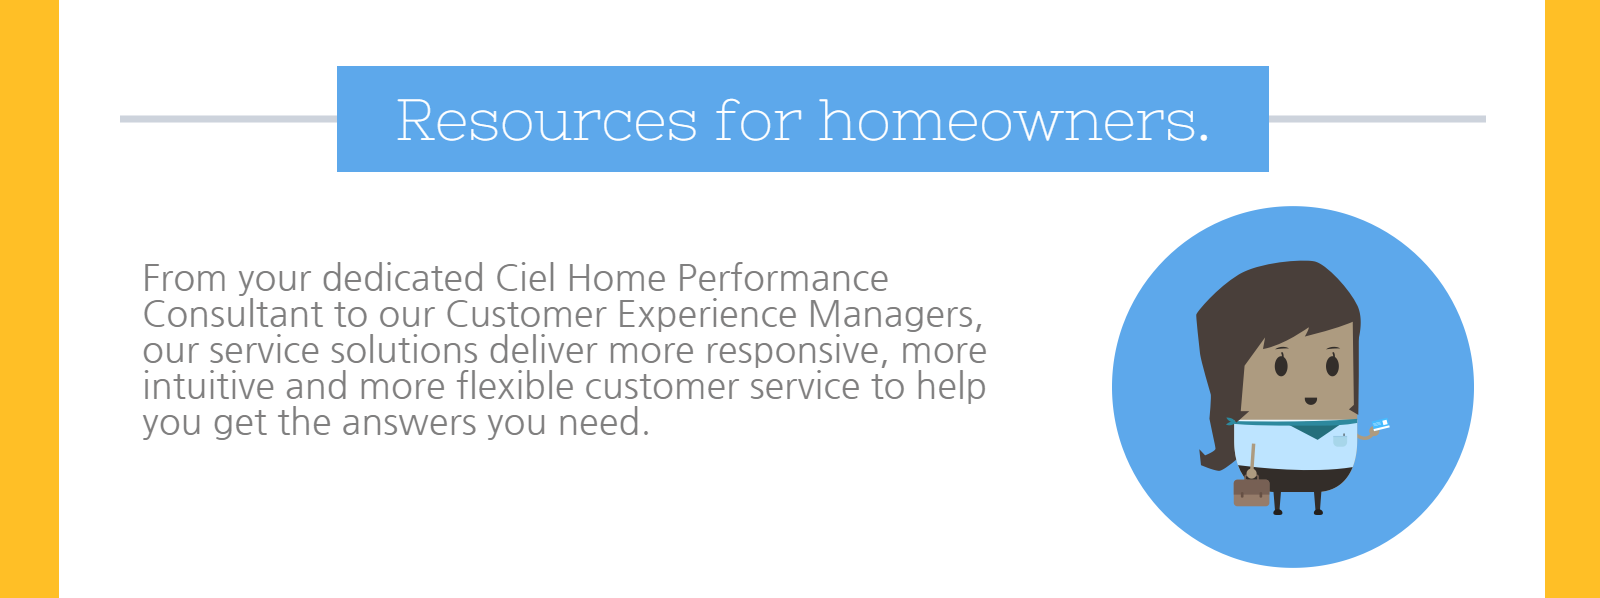 Resources For Homeowners.png